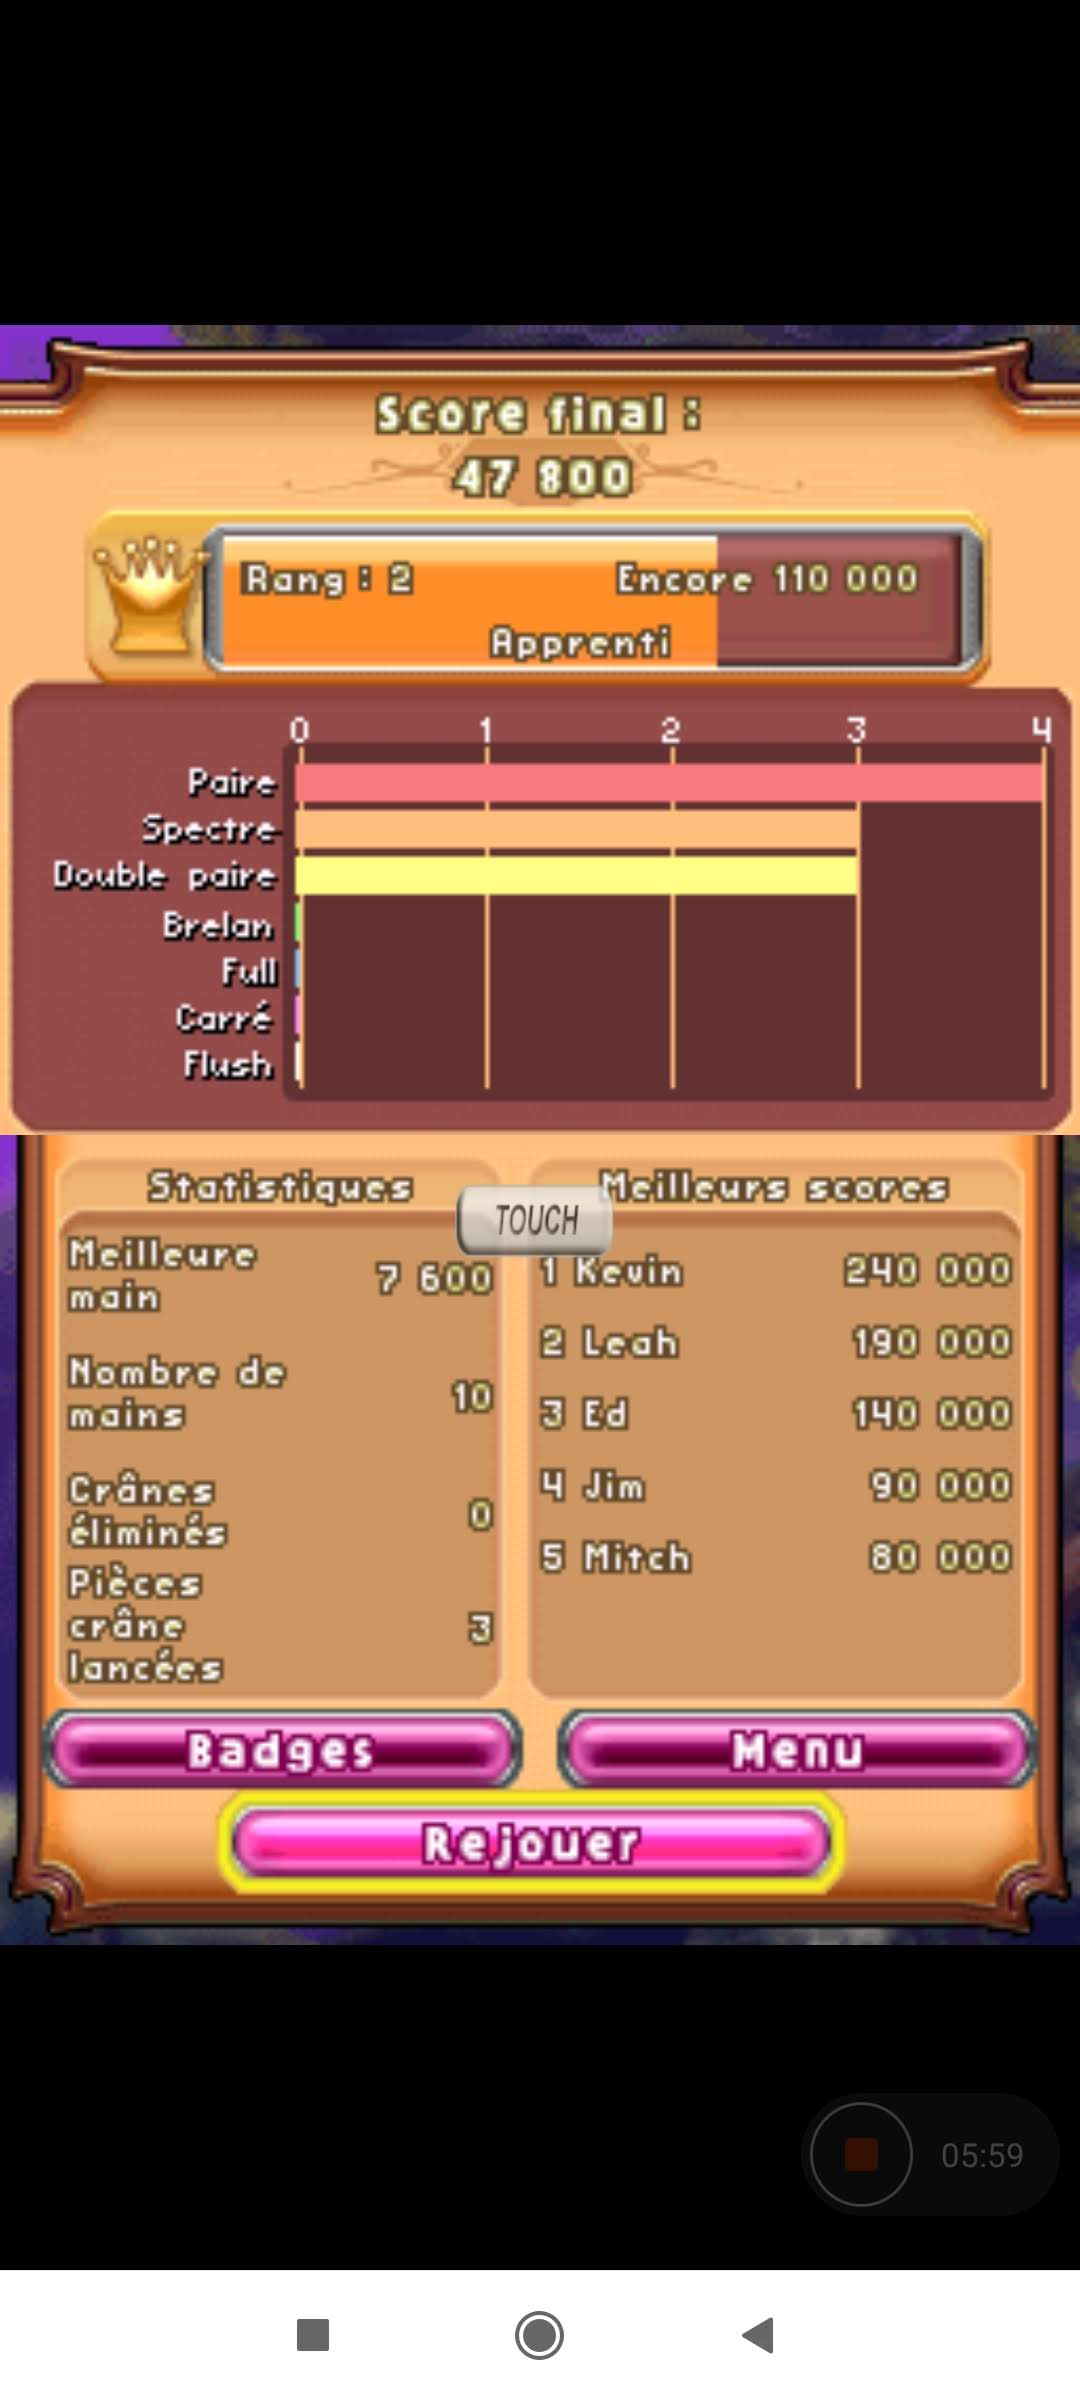 Larquey: Bejeweled 3: Poker [Number of Spectrum] (Nintendo DS Emulated) 3 points on 2020-09-26 03:25:39